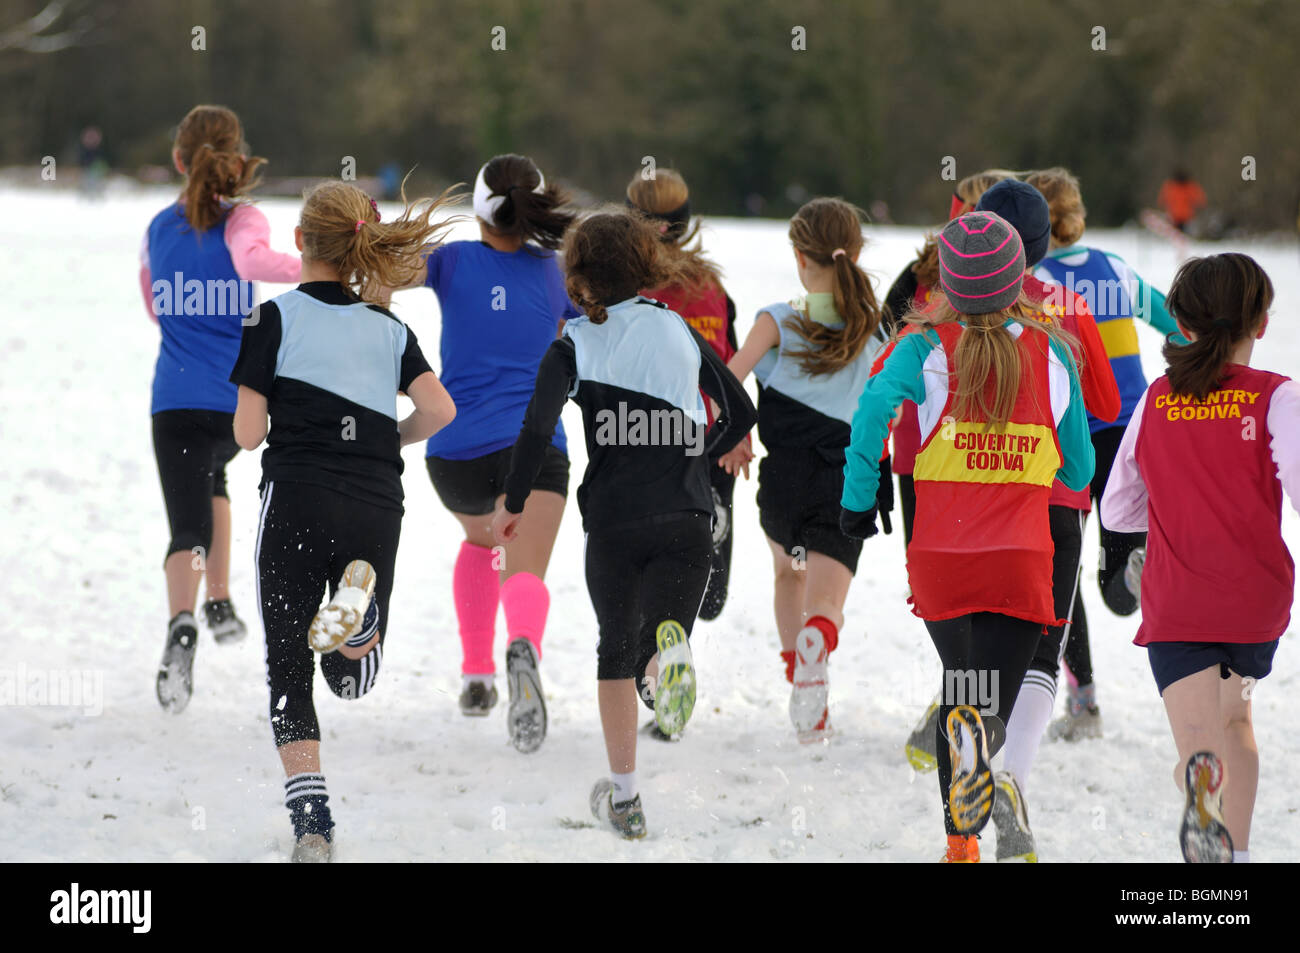 Teenage girls starting cross-country race in snow seen ...